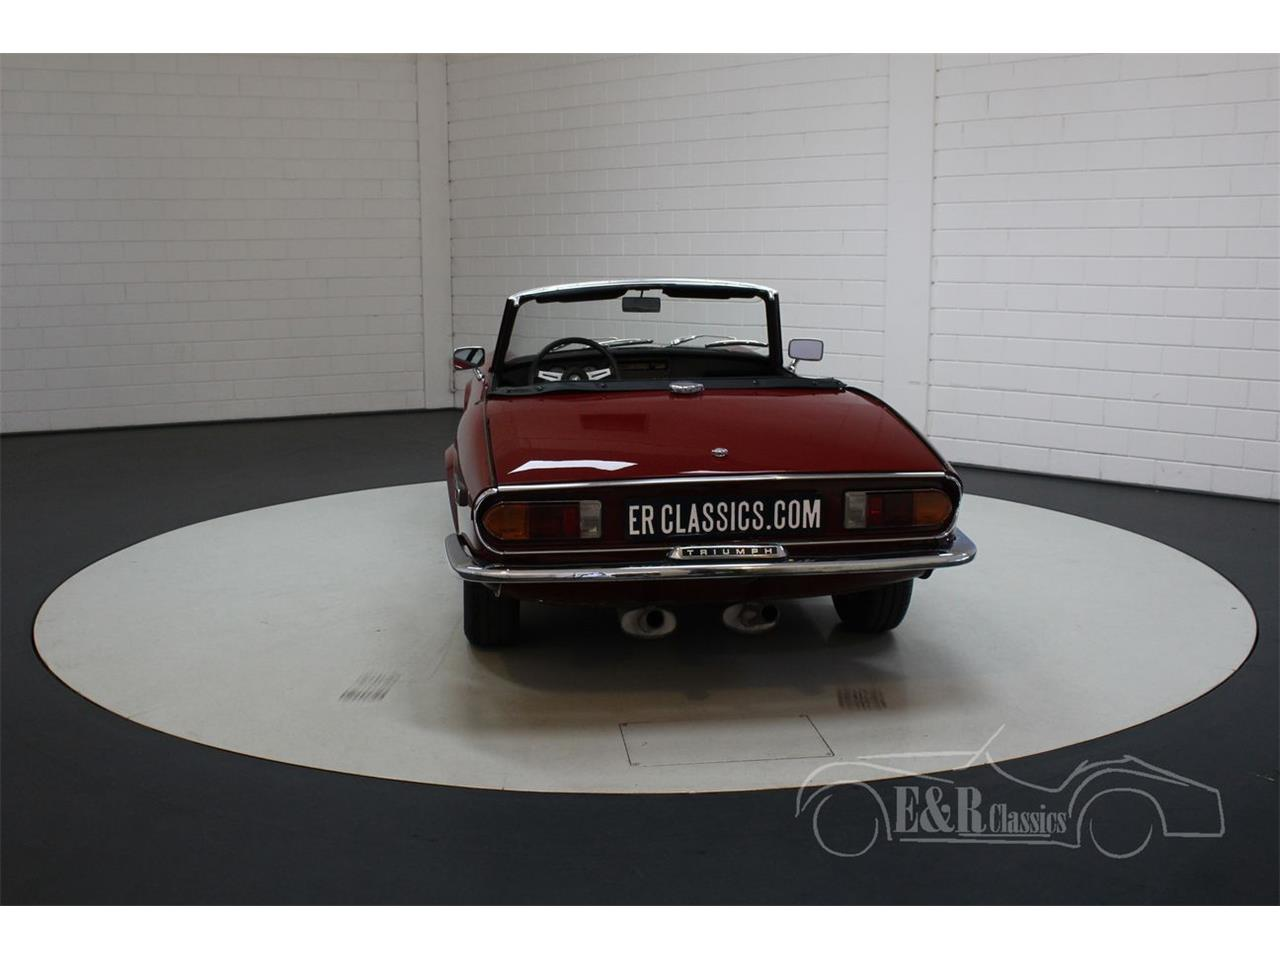 1971 Triumph Spitfire (CC-1385625) for sale in Waalwijk, Noord-Brabant